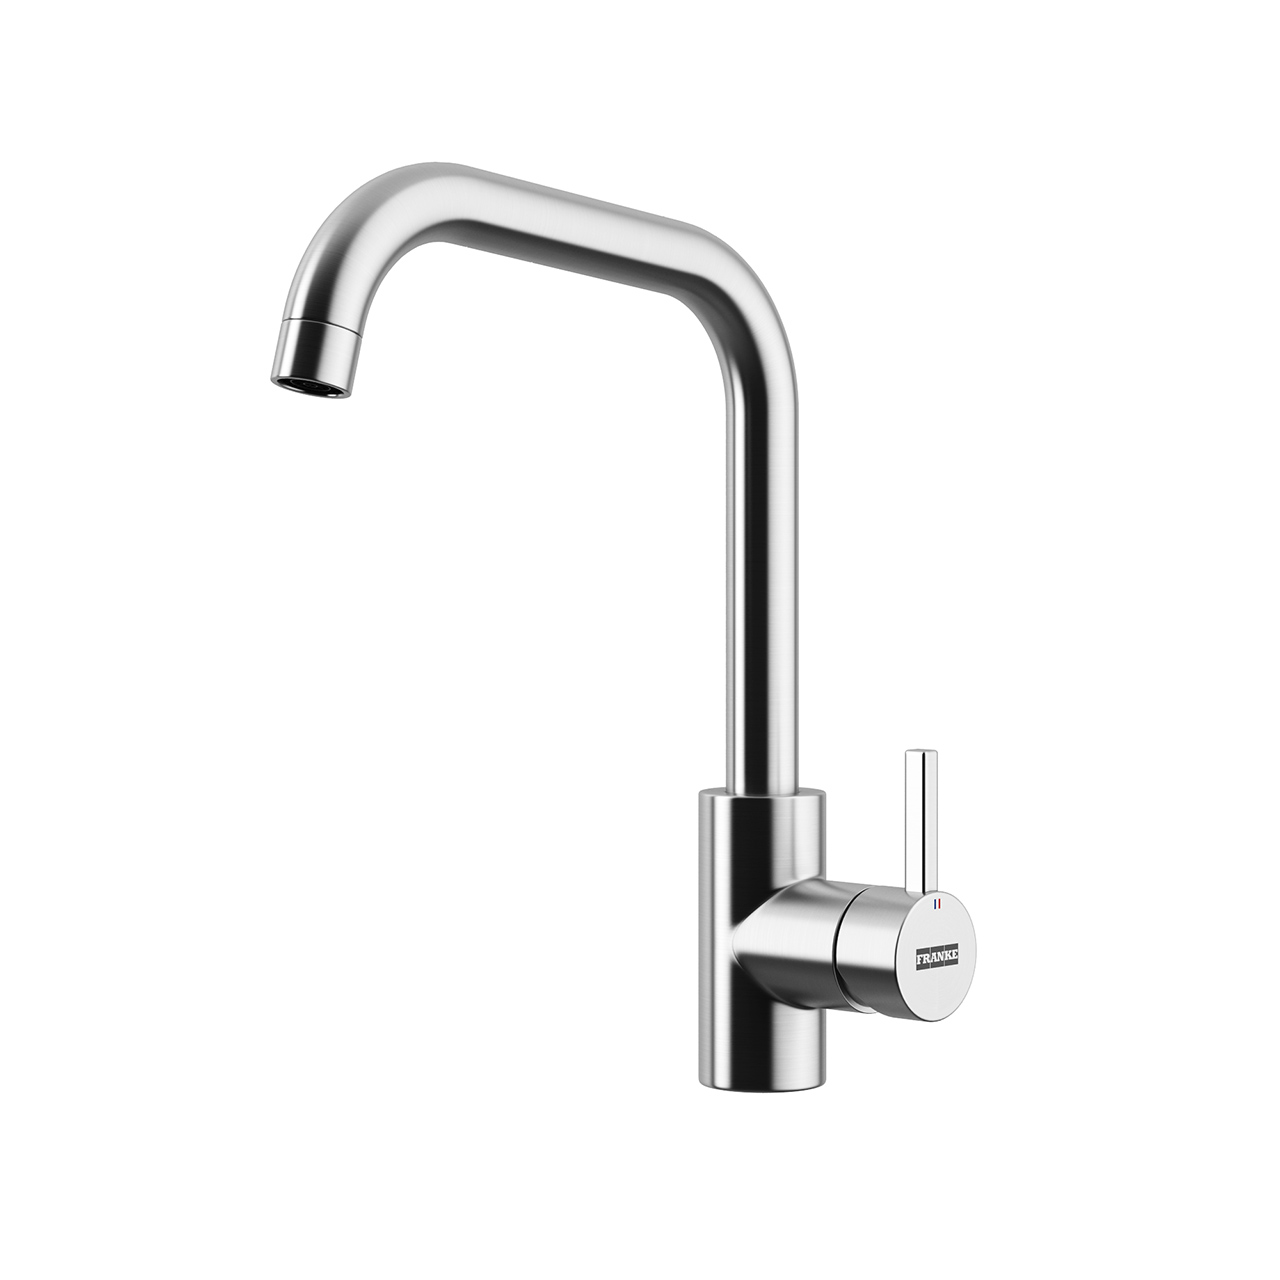 Kubus Kitchen Tap Swivel Spout  by Franke